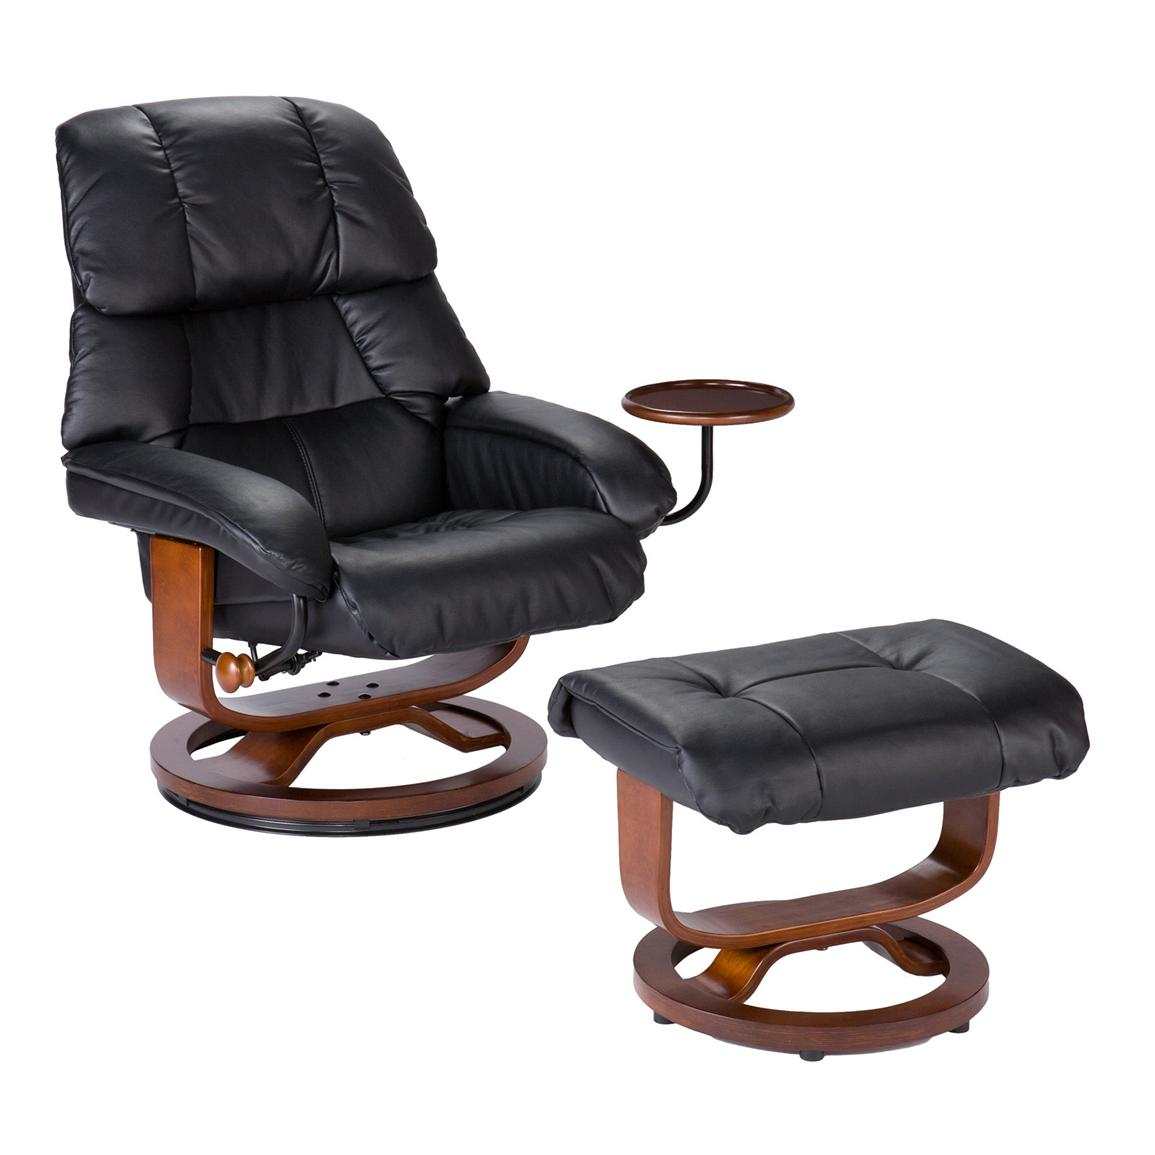 Mechanism-glide reclining system with position lock and 360 degree swivel (ottoman does not swivel)